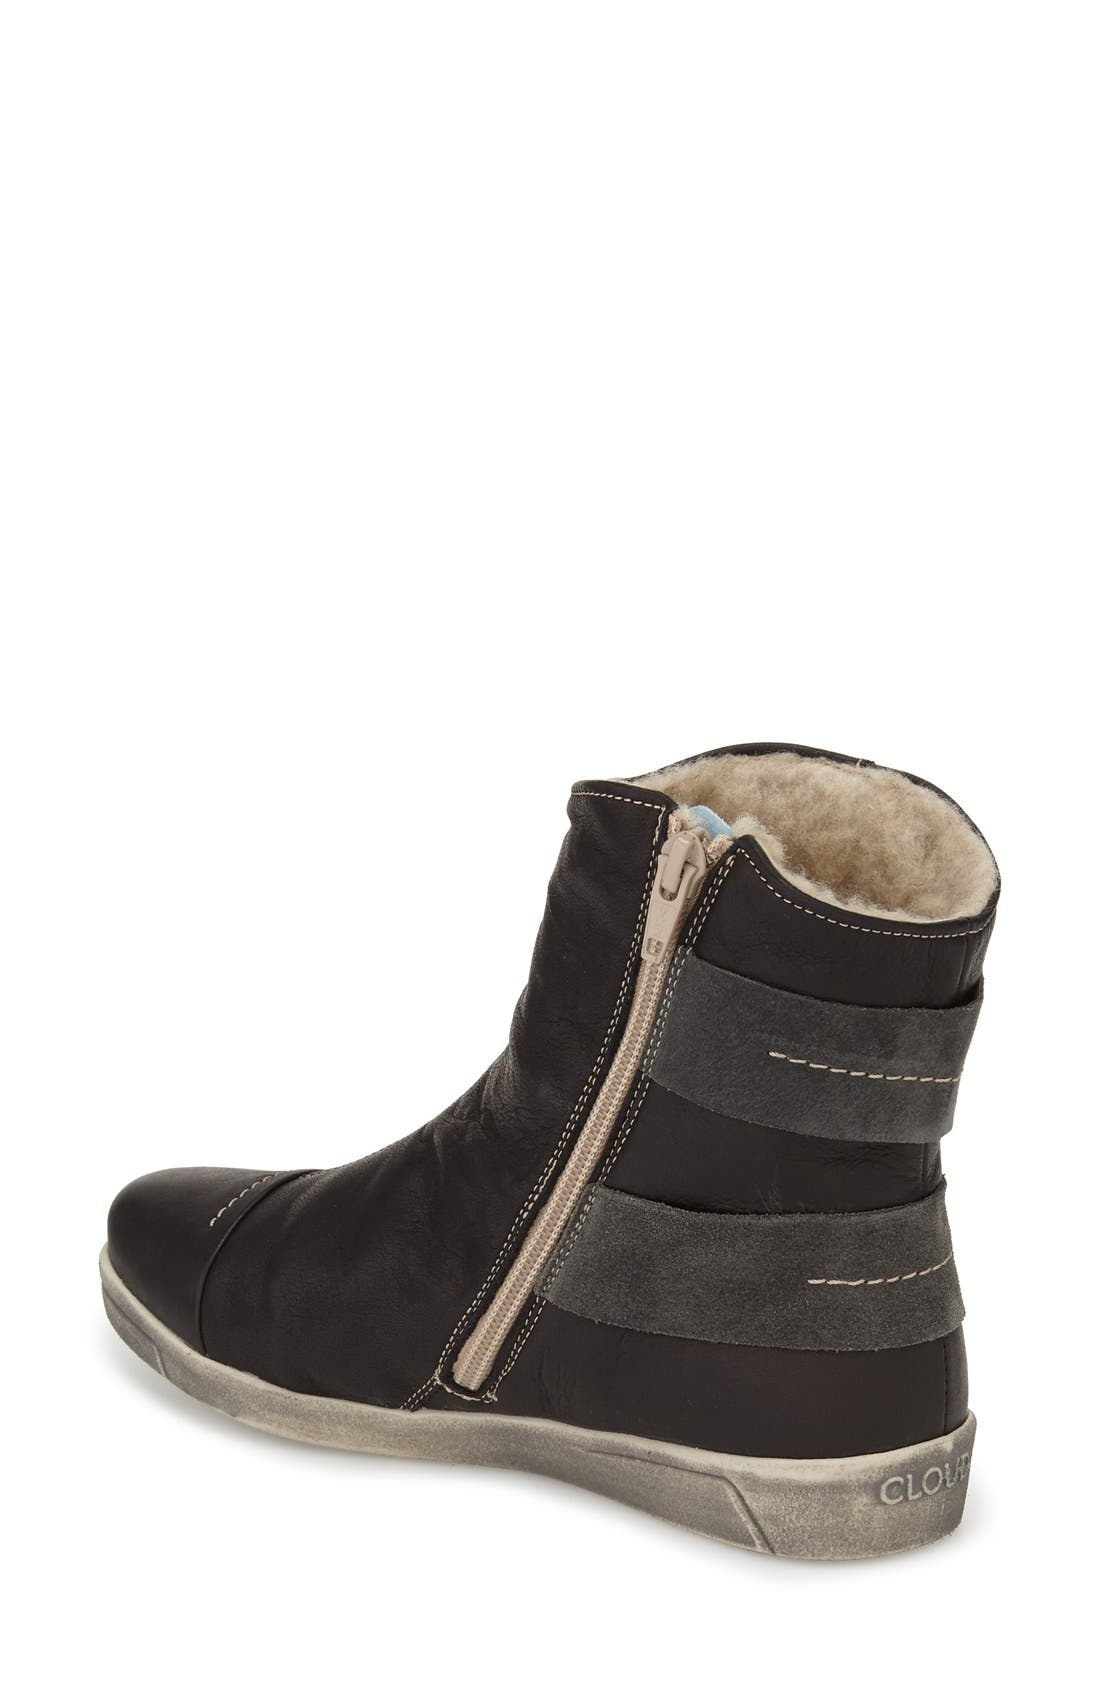 Aline Fantasy Shearling Lined Boot,                             Alternate thumbnail 2, color,                             BLACK LEATHER